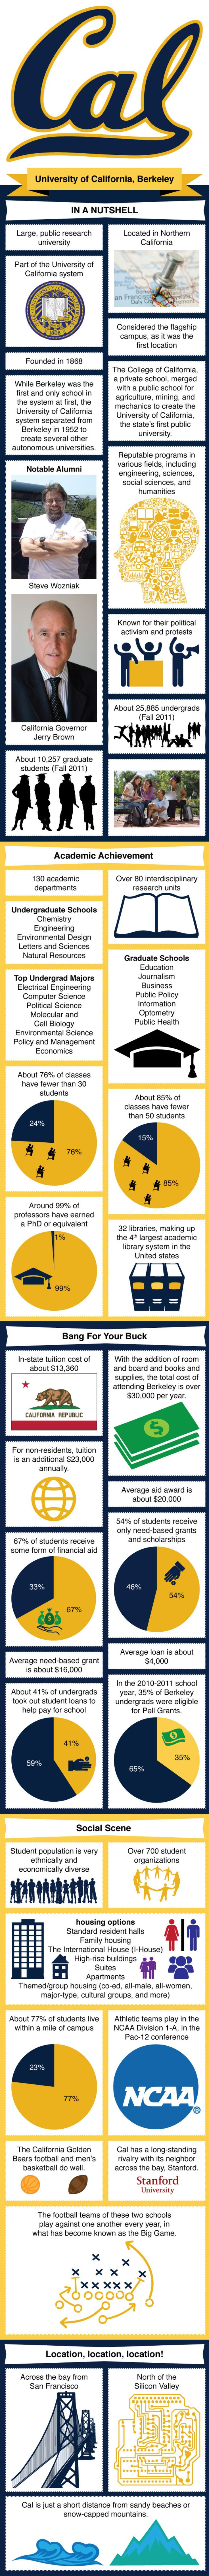 best ideas about uc berkeley graduate school university of california berkeley cal infographic gives information about the us university admission programs fees etc